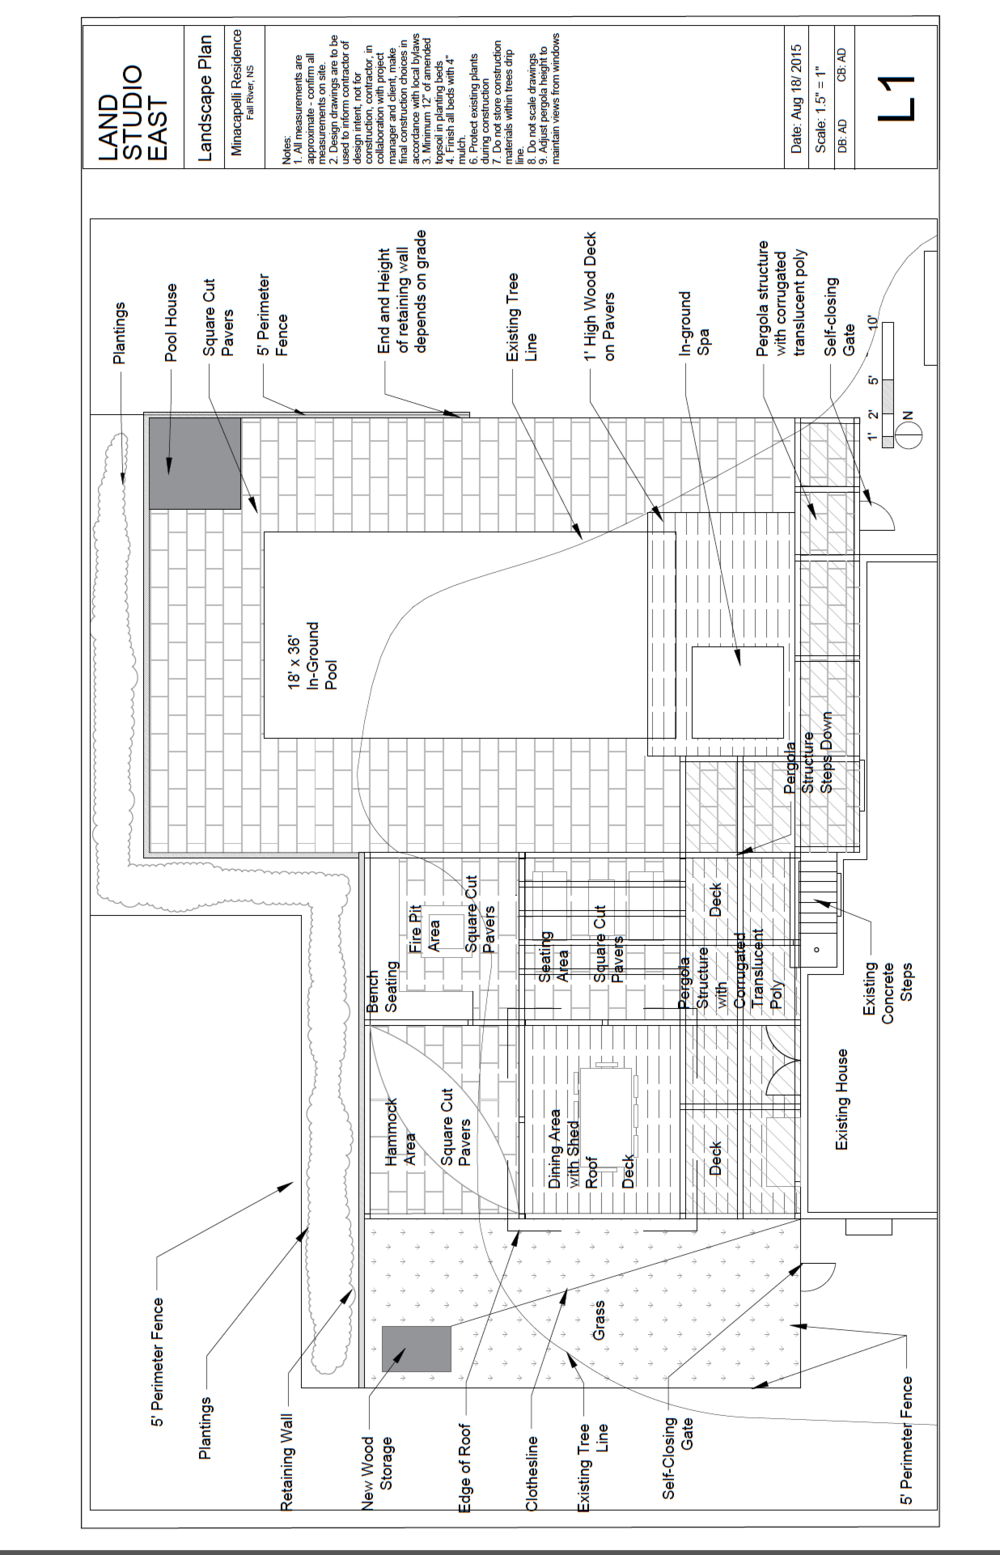 New Construction Site Plans - Our services include providing construction documents for siting the house, laying out important elements - including driveways and septic systems, grading and landscape design.We can help you plan and design your dream home, take advantage of great views, maintain existing vegetation and balance cut and fill.On coastal sites we work with innovative ecological techniques (living shorelines) that are an attractive economical alternative, or addition, to rock walls to strengthen the barrier between your property and the ocean.By planning right from the start, you'll end up with a beautiful property that saves you money, compliments your home and suits your lifestyle.